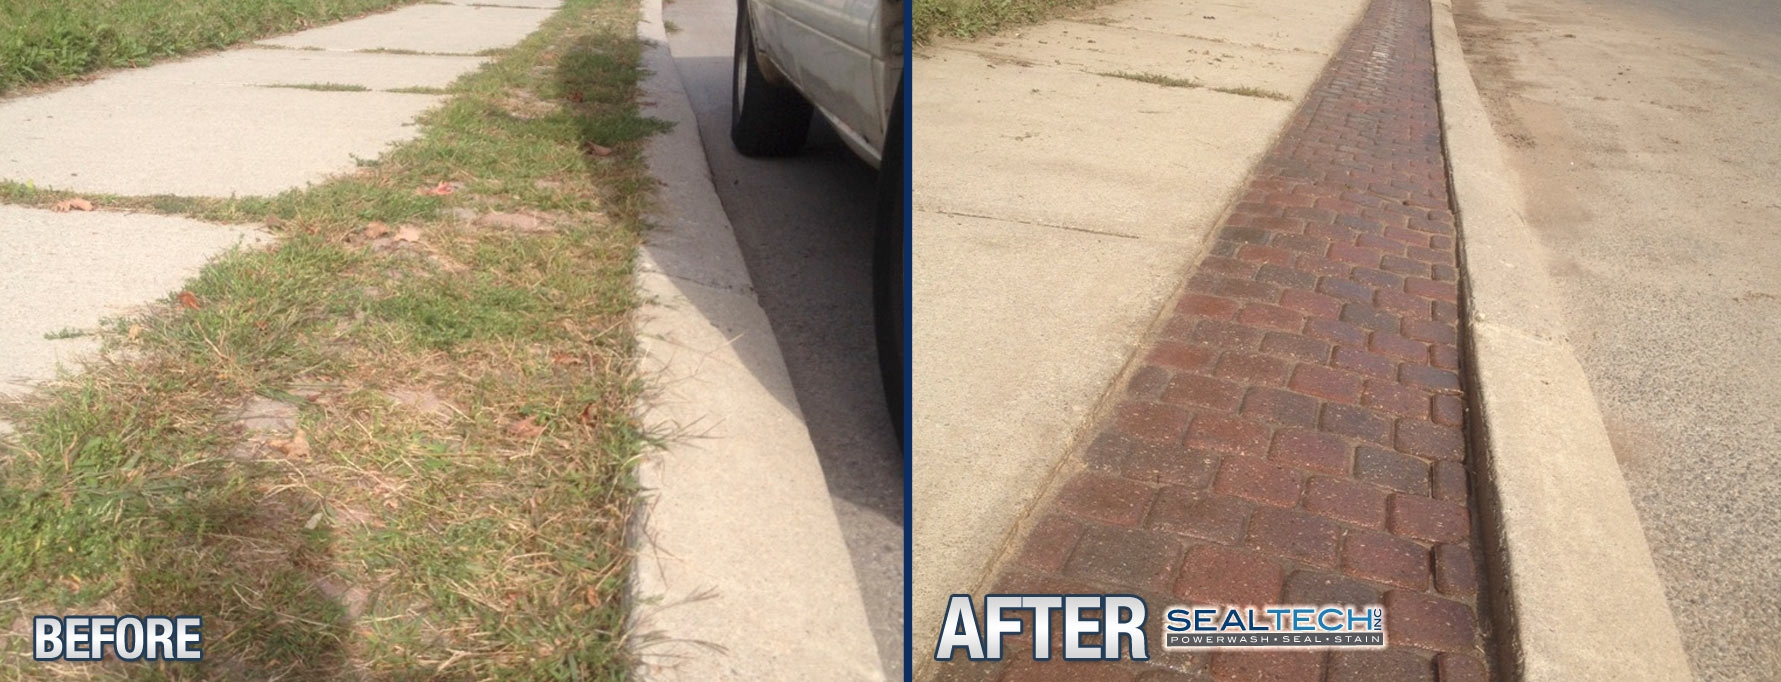 best-interlocking-stone-cleaning-and-sealing-before-after